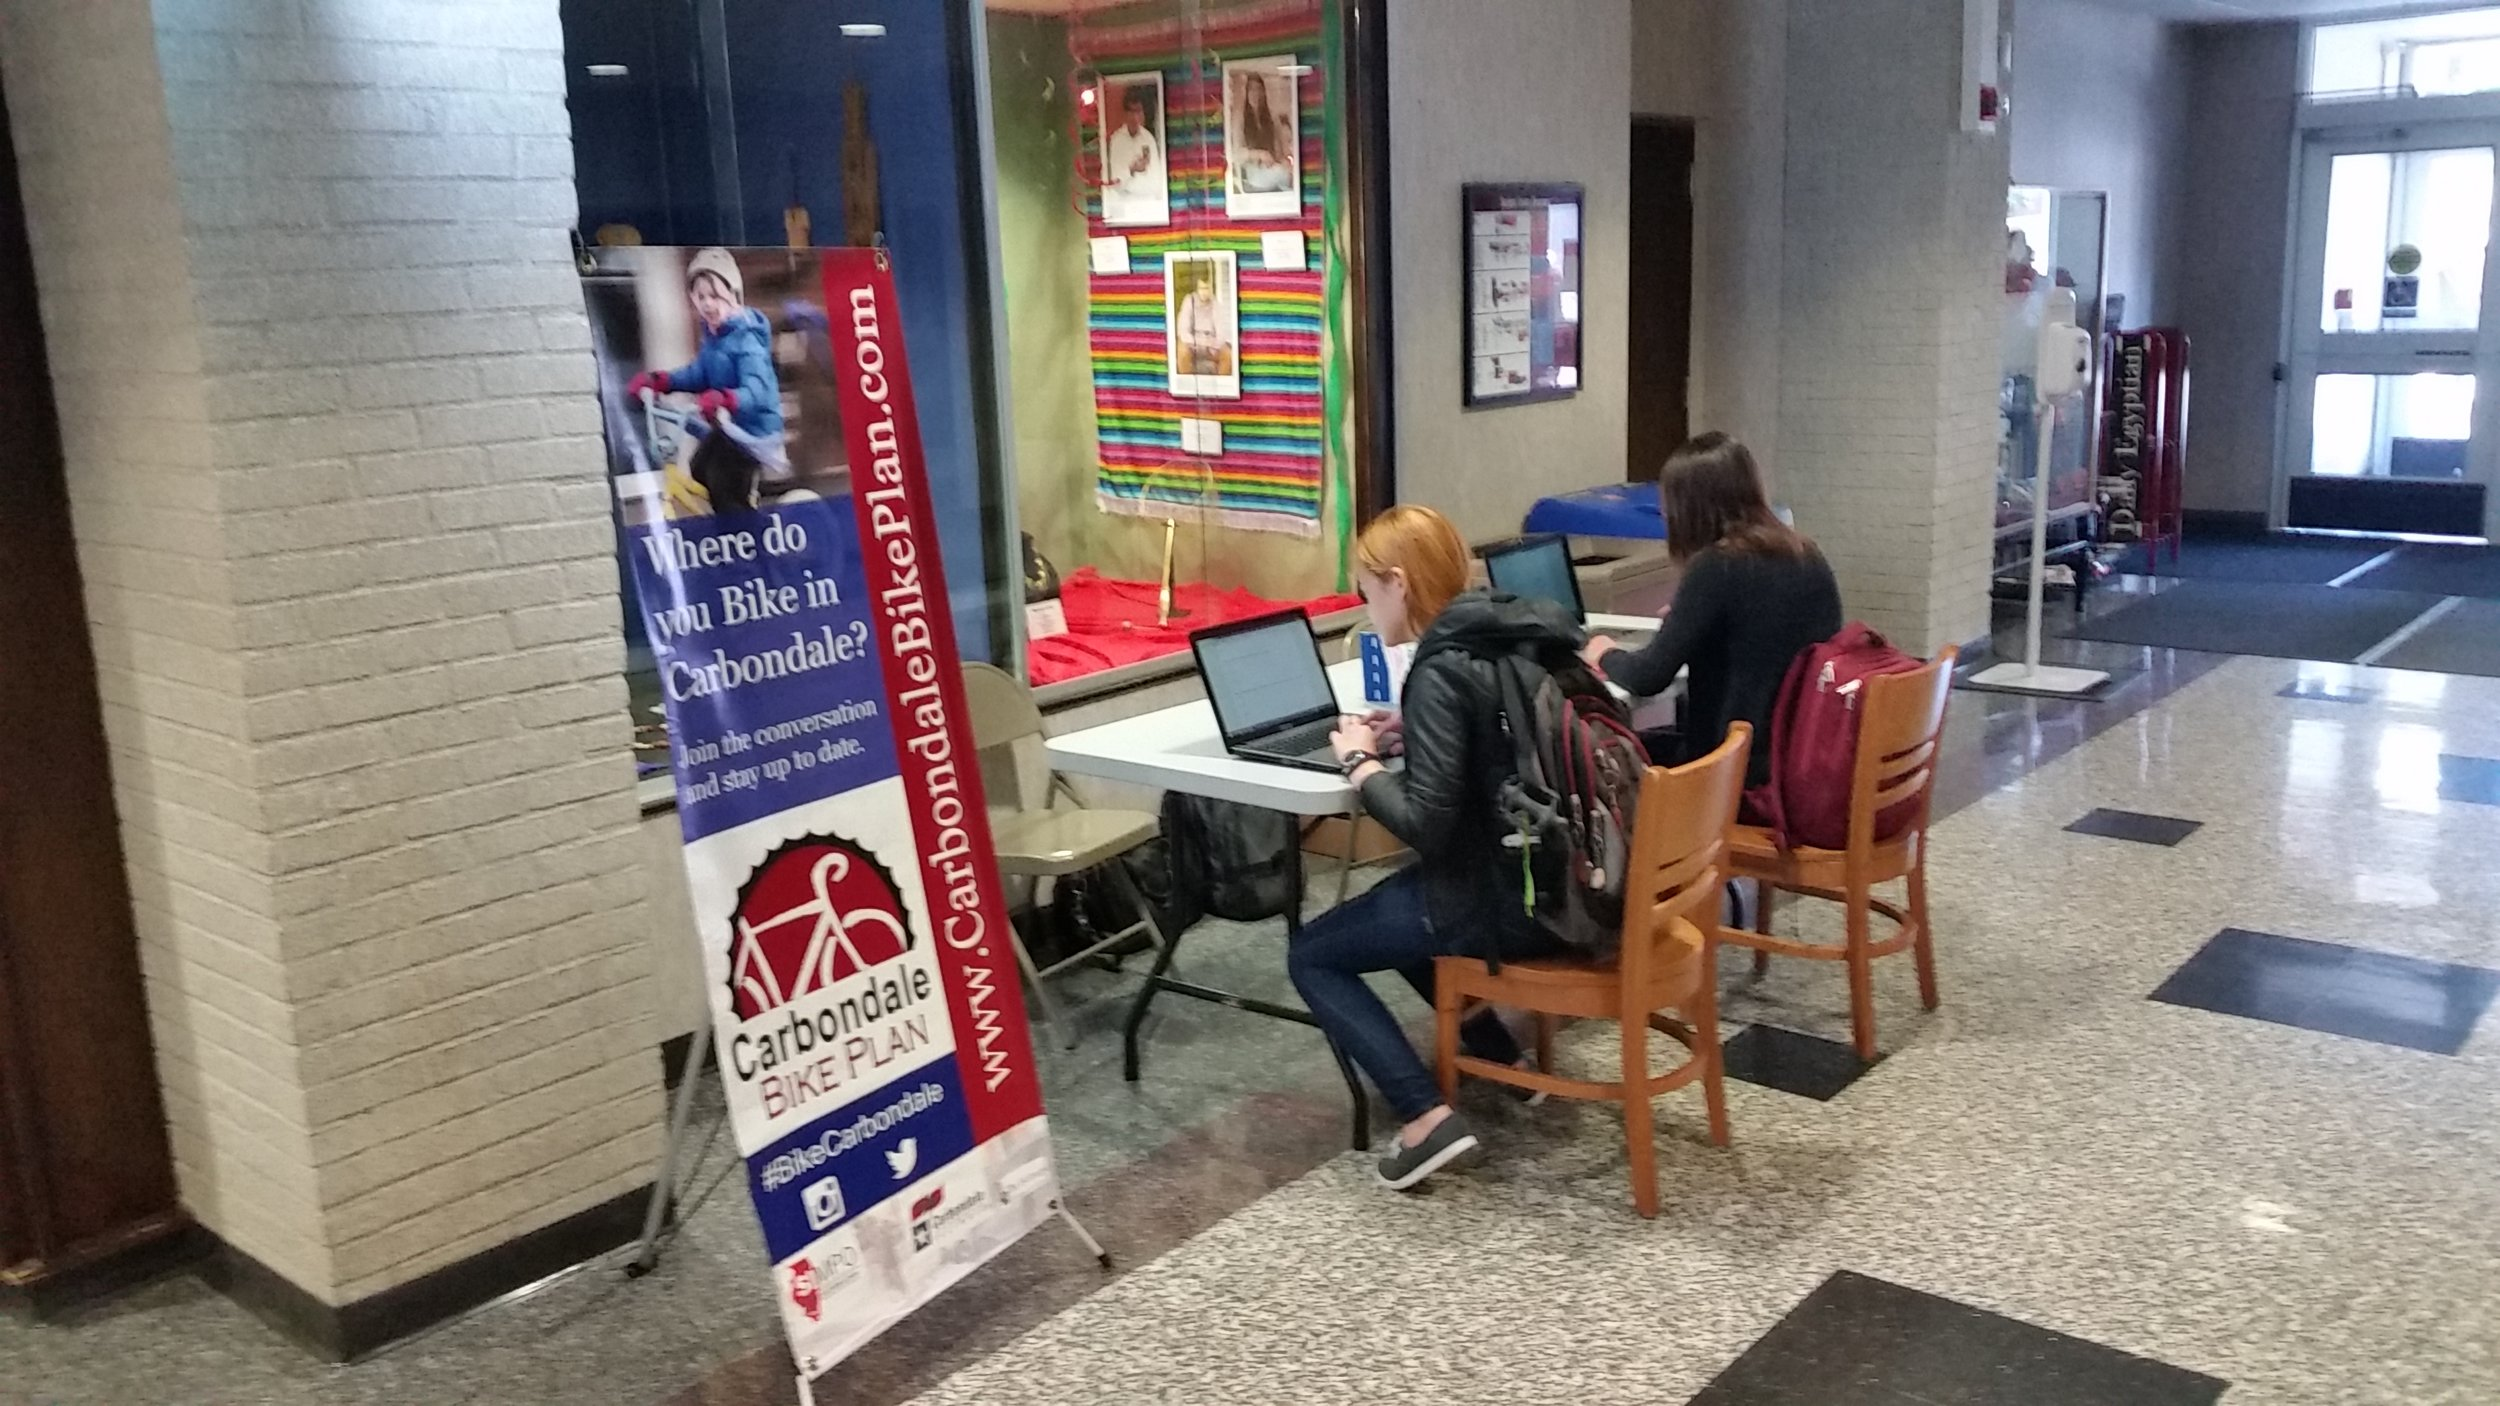 Students at SIU take the survey for the bike plan.